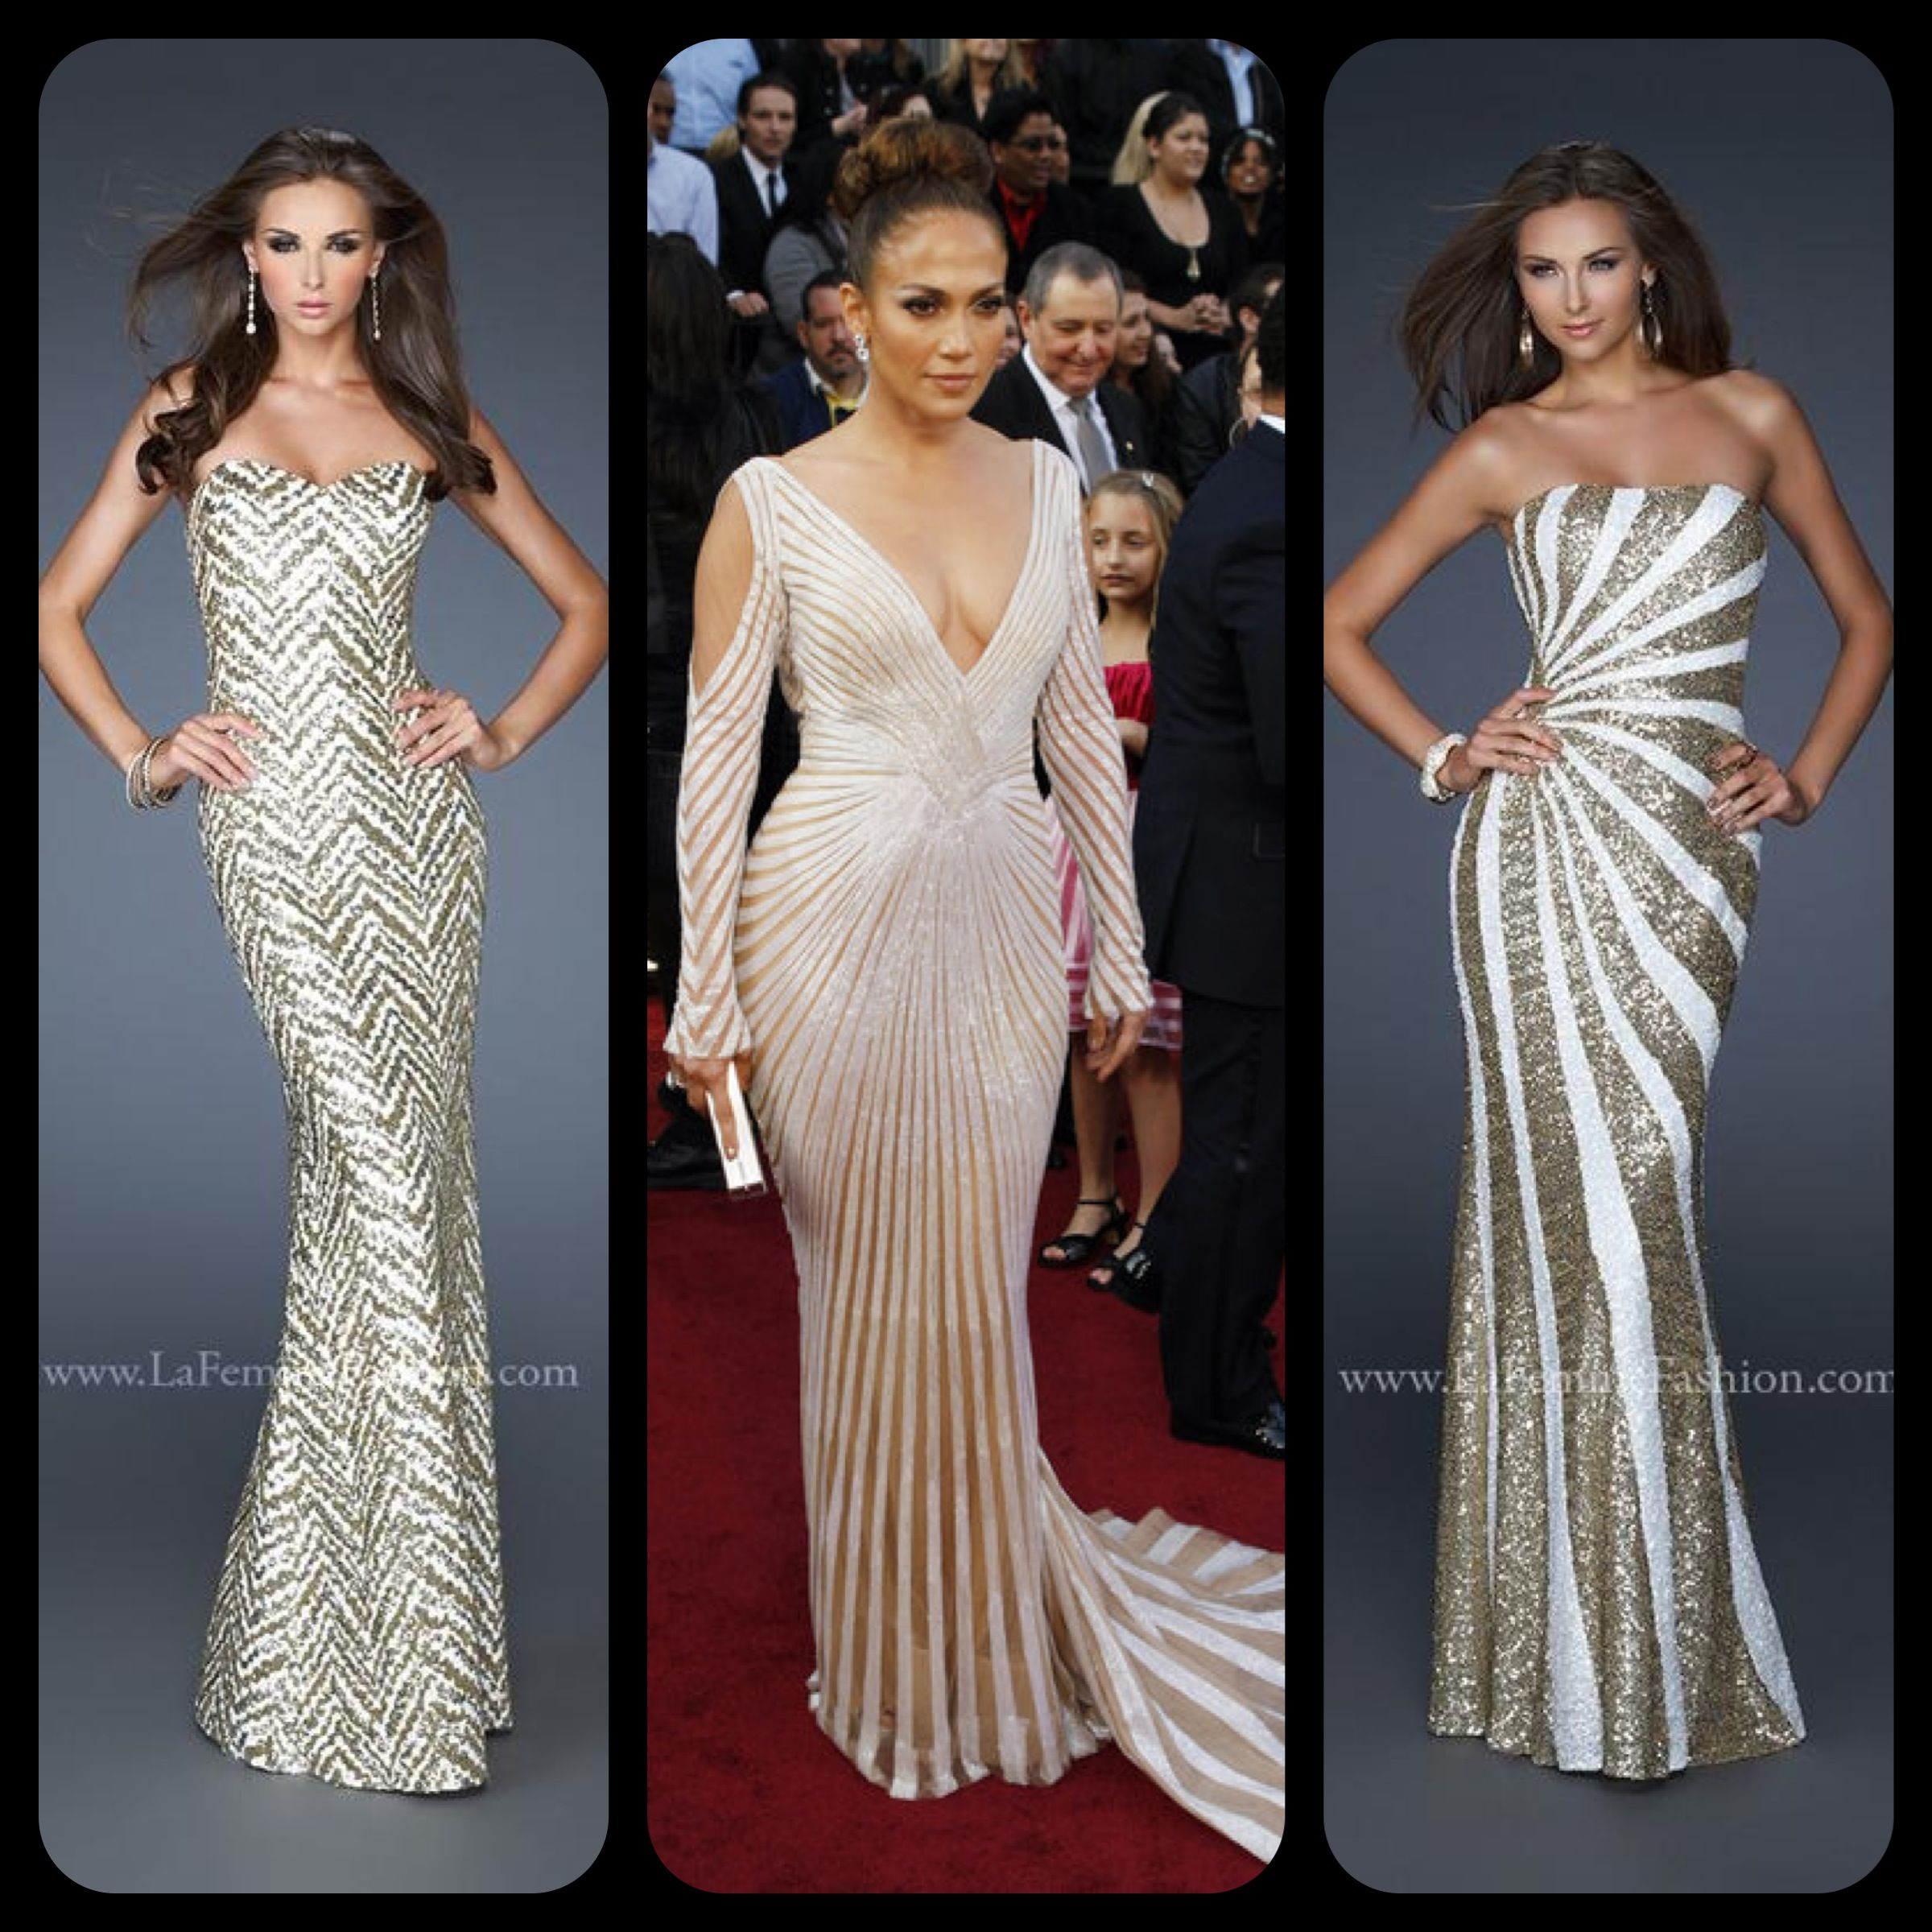 Jlo wedding dress  We canut wait to see what glamorous dresses the celebrities wear on